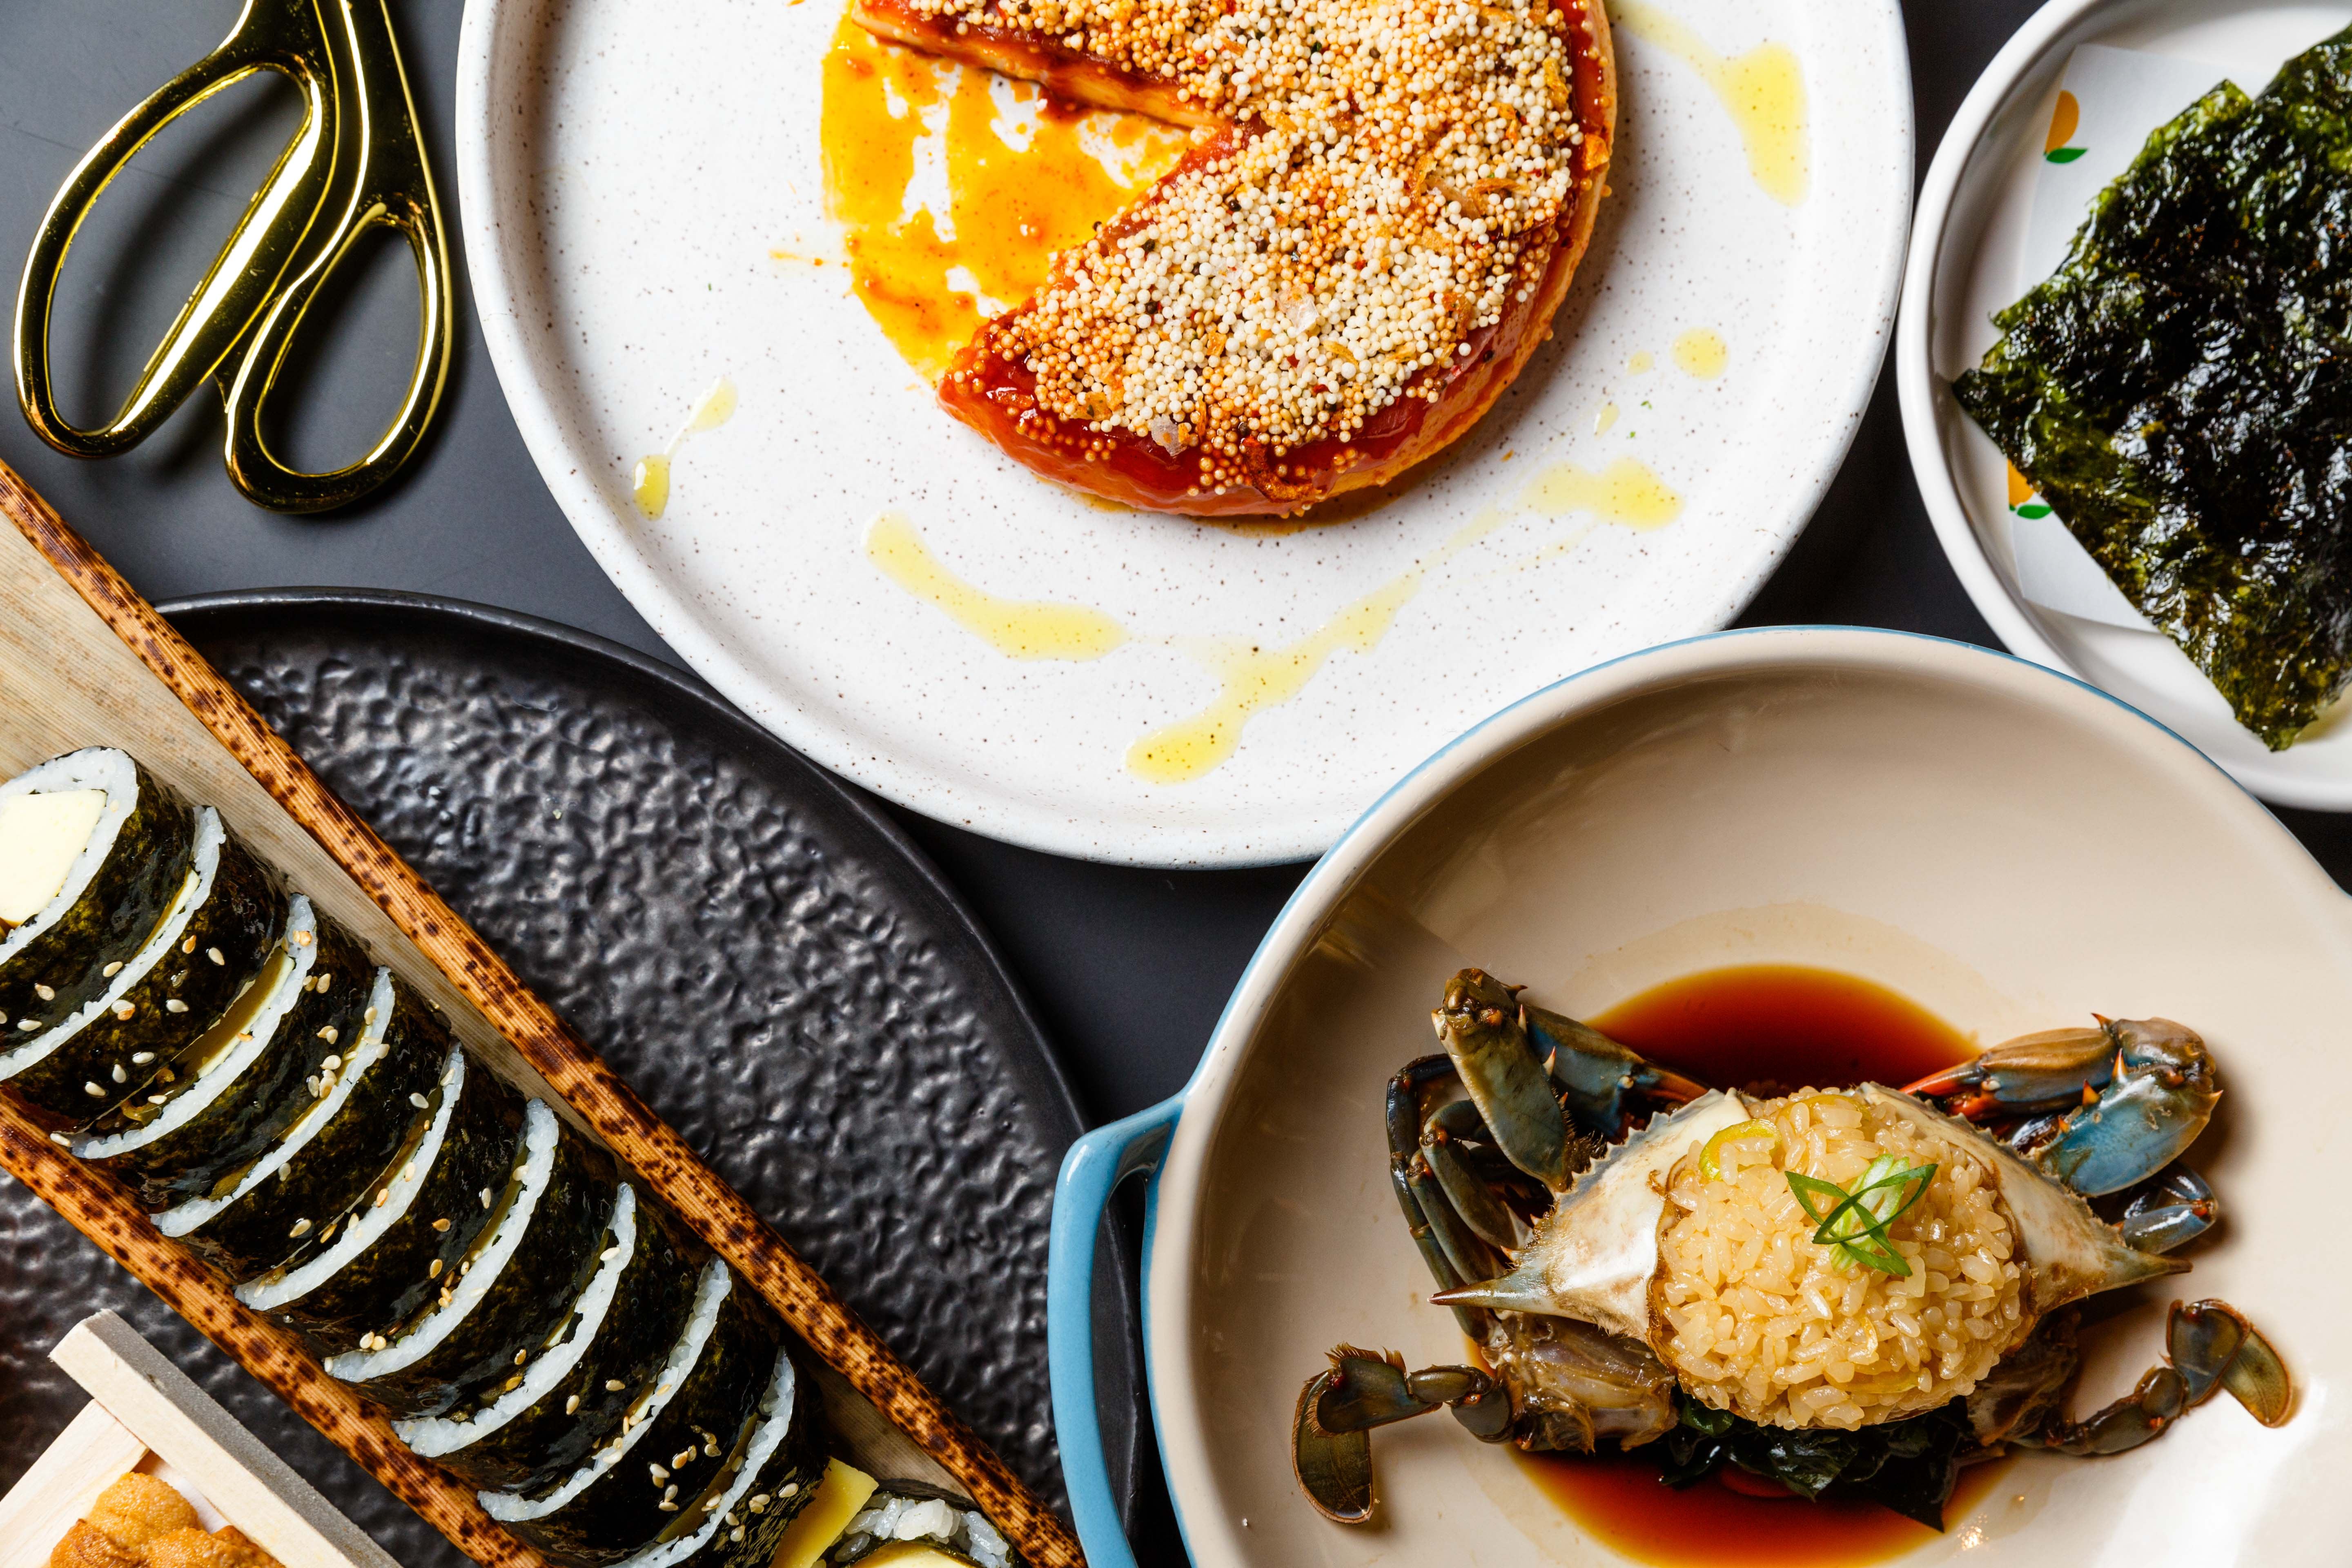 An assortment of dishes at Kawi, including raw blue crab, its shell stuffed with rice, and a pinwheel of roasted rice cake, which is dark red and topped with sesame seeds